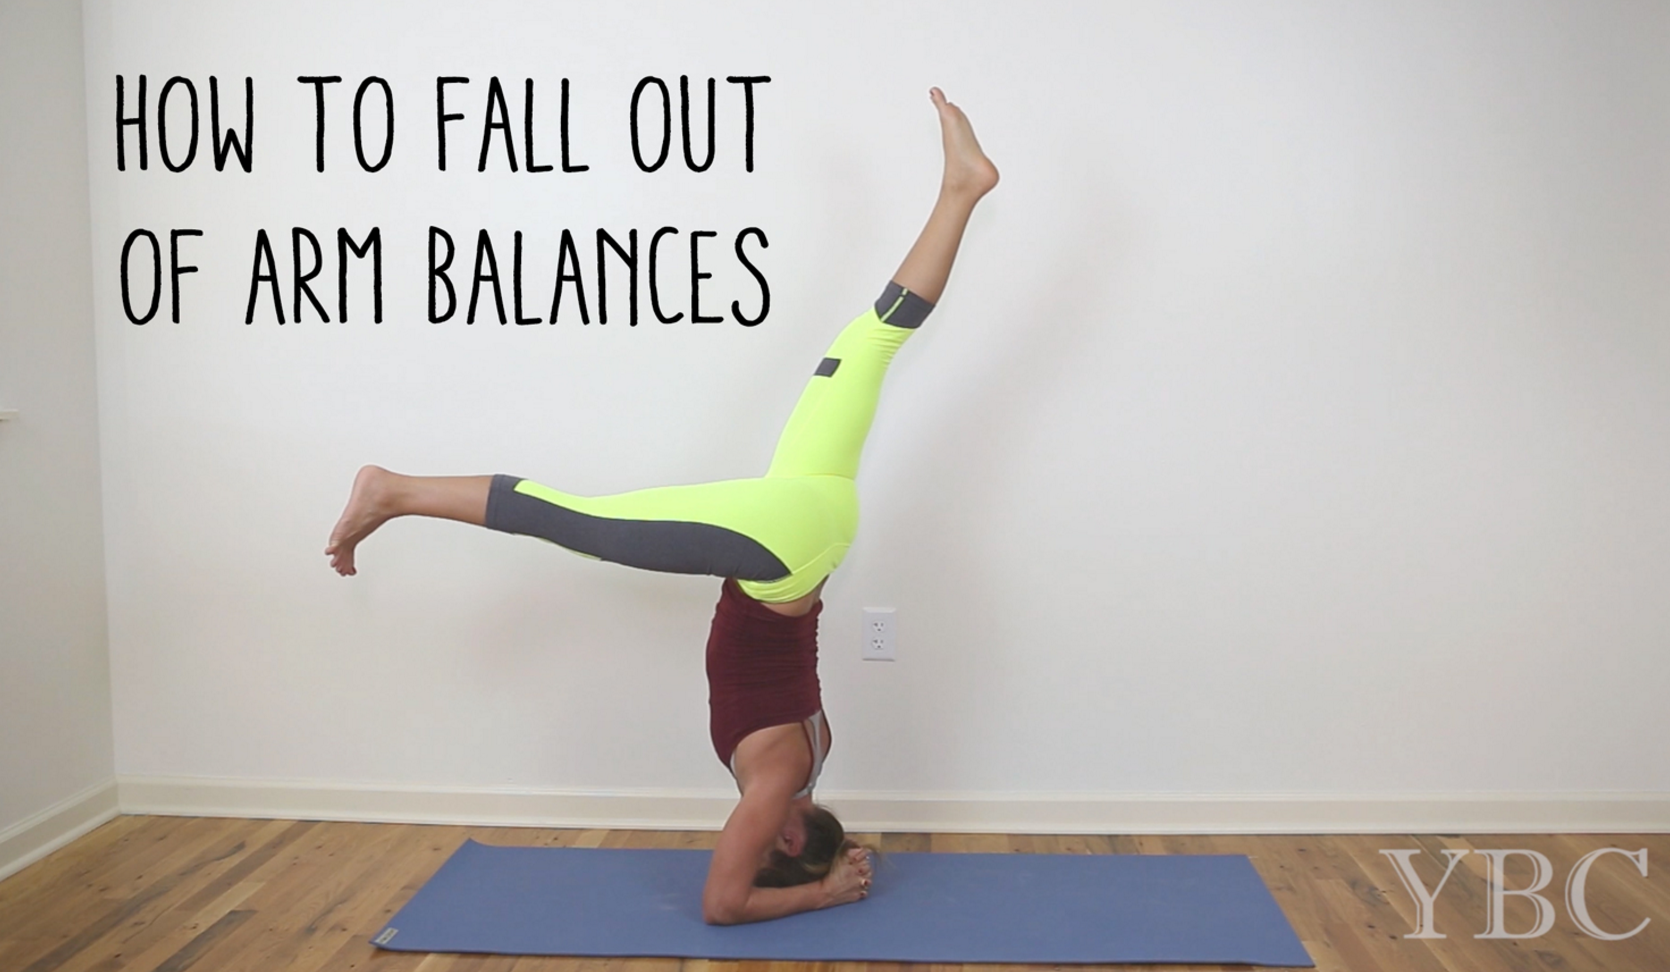 Pin now and practice later - how to safely fall out of arm balances.